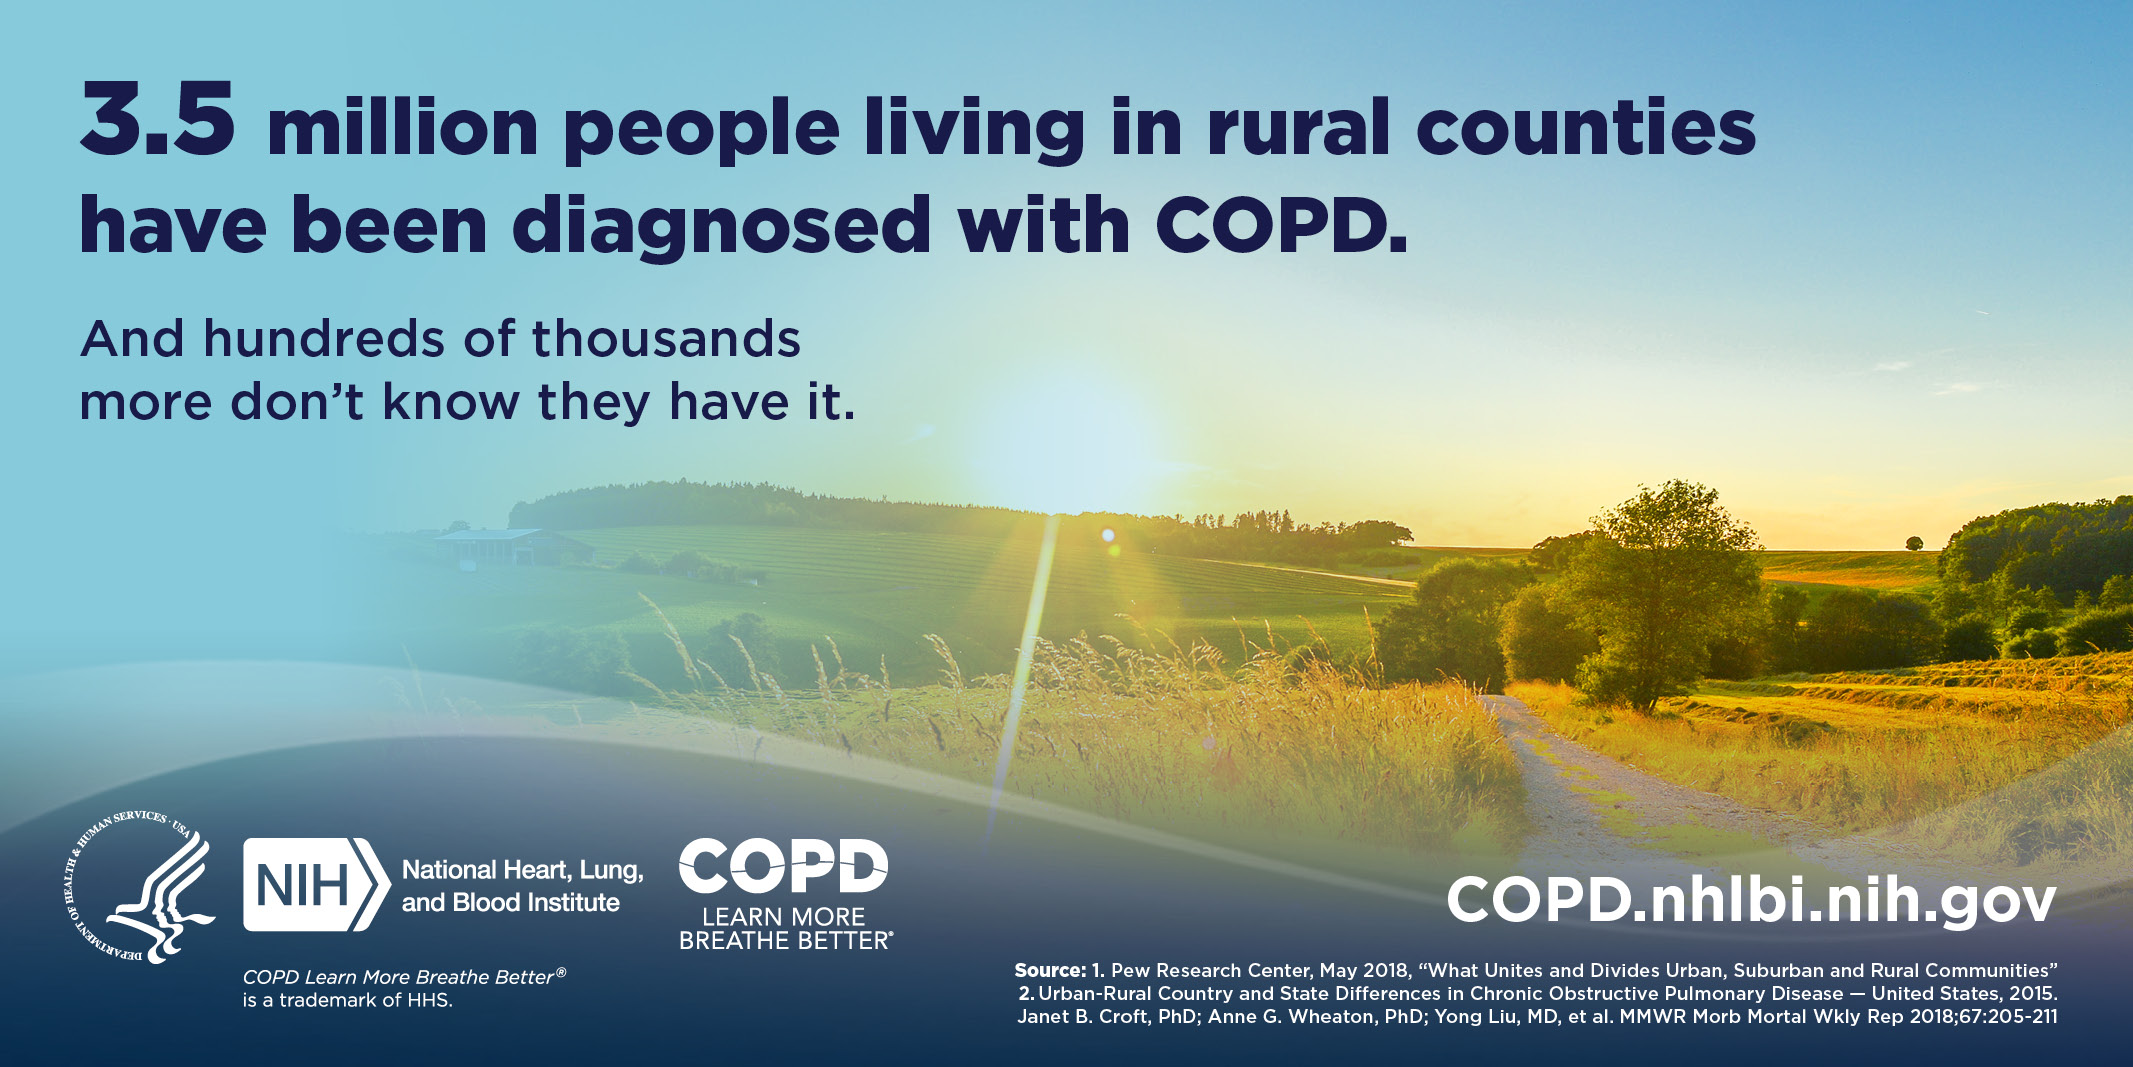 IMage with text: 3.5 million people living in rural counties have been diagnosed with COPD. And hundreds of thousands more don't know they have it. COPD.nhlbi.nih.gov.